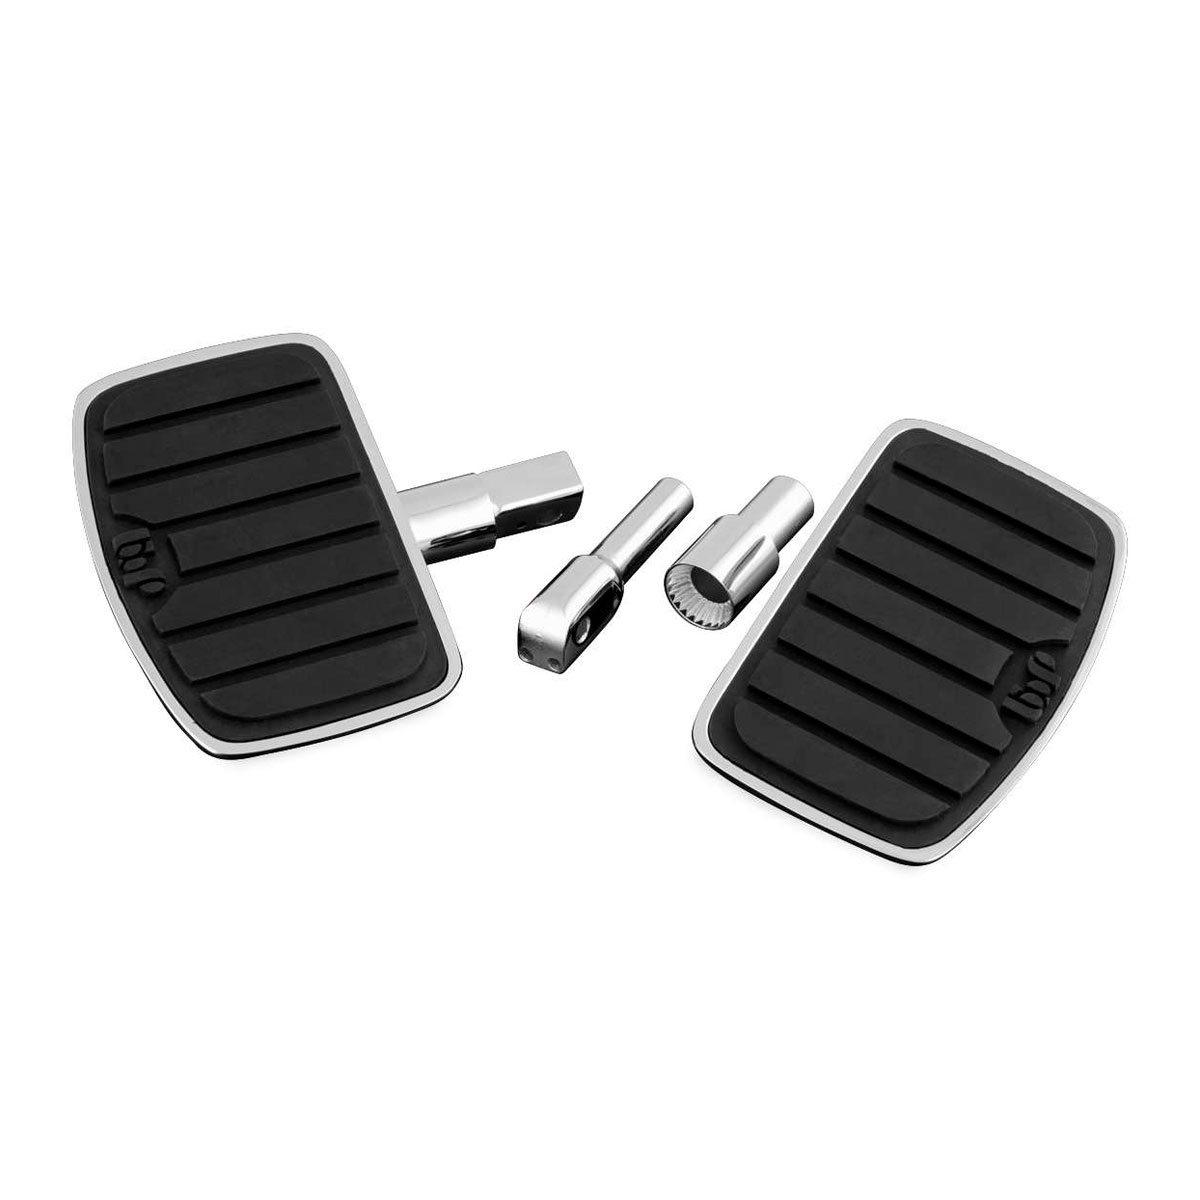 Show Chrome Accessories Cruis Board Passenger Floorboards